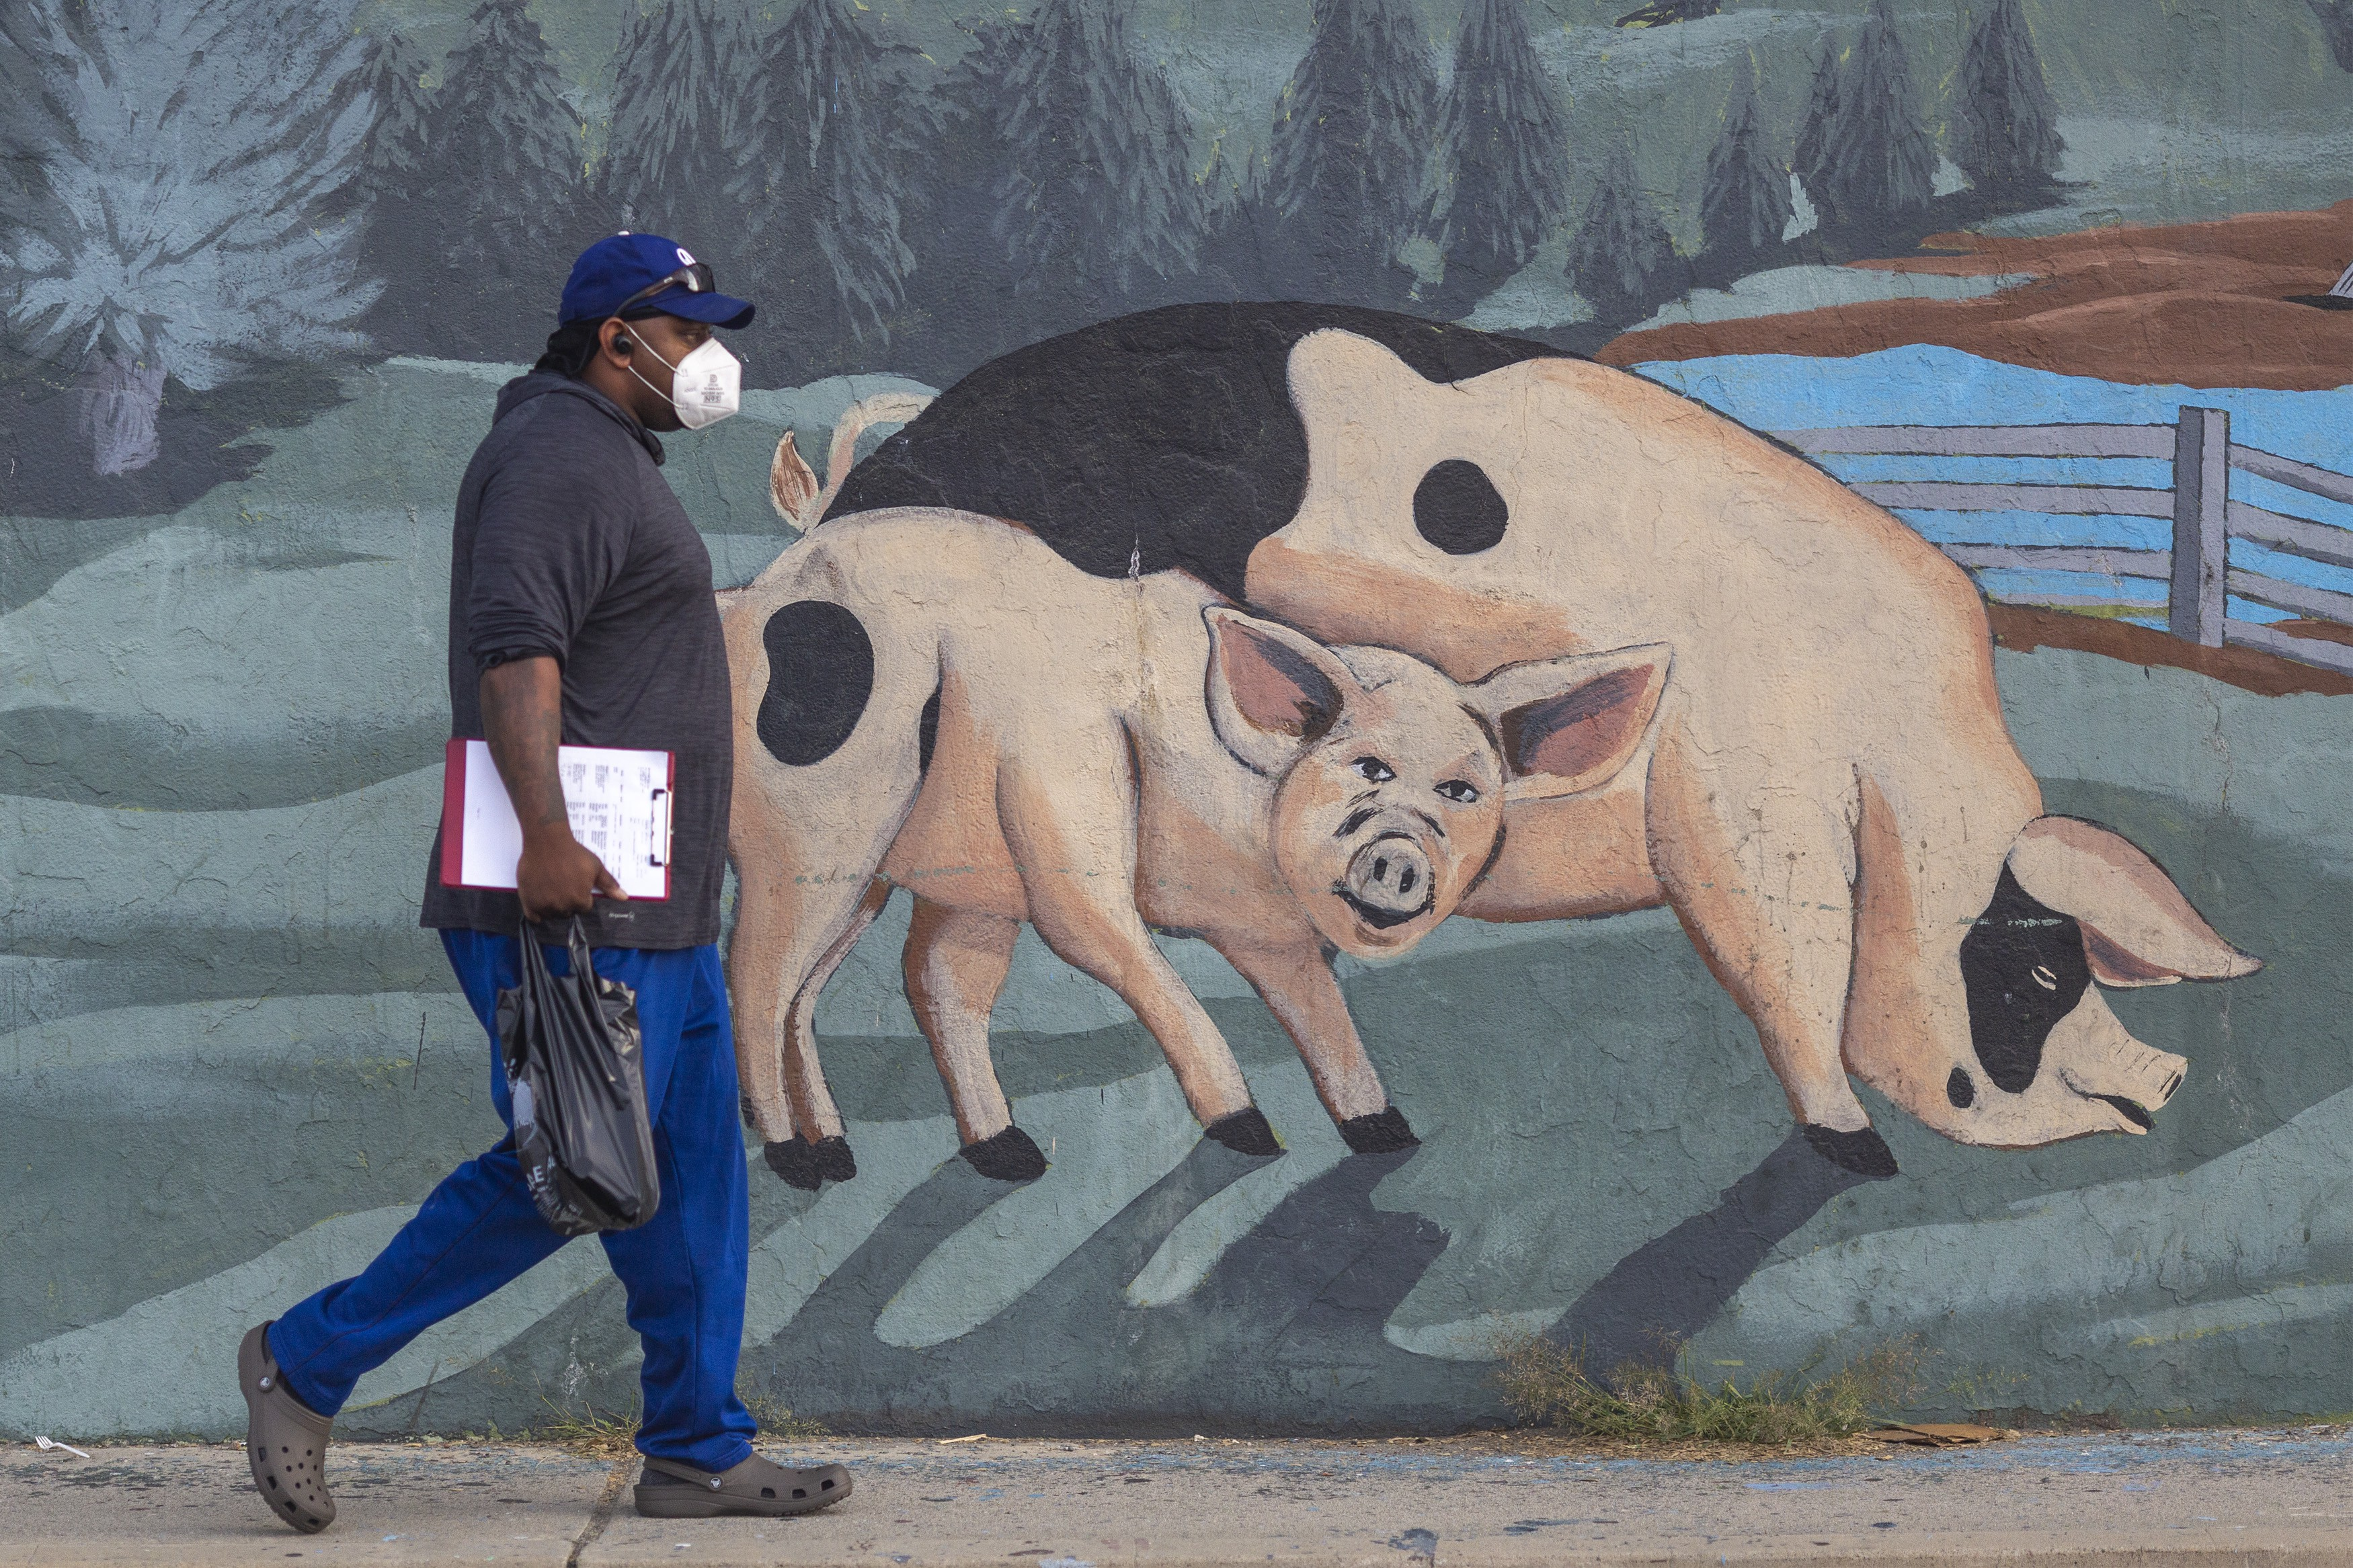 A man walks past a mural on the Farmer John slaughterhouse in Vernon, CA after 153 workers tested positive for Covid-19